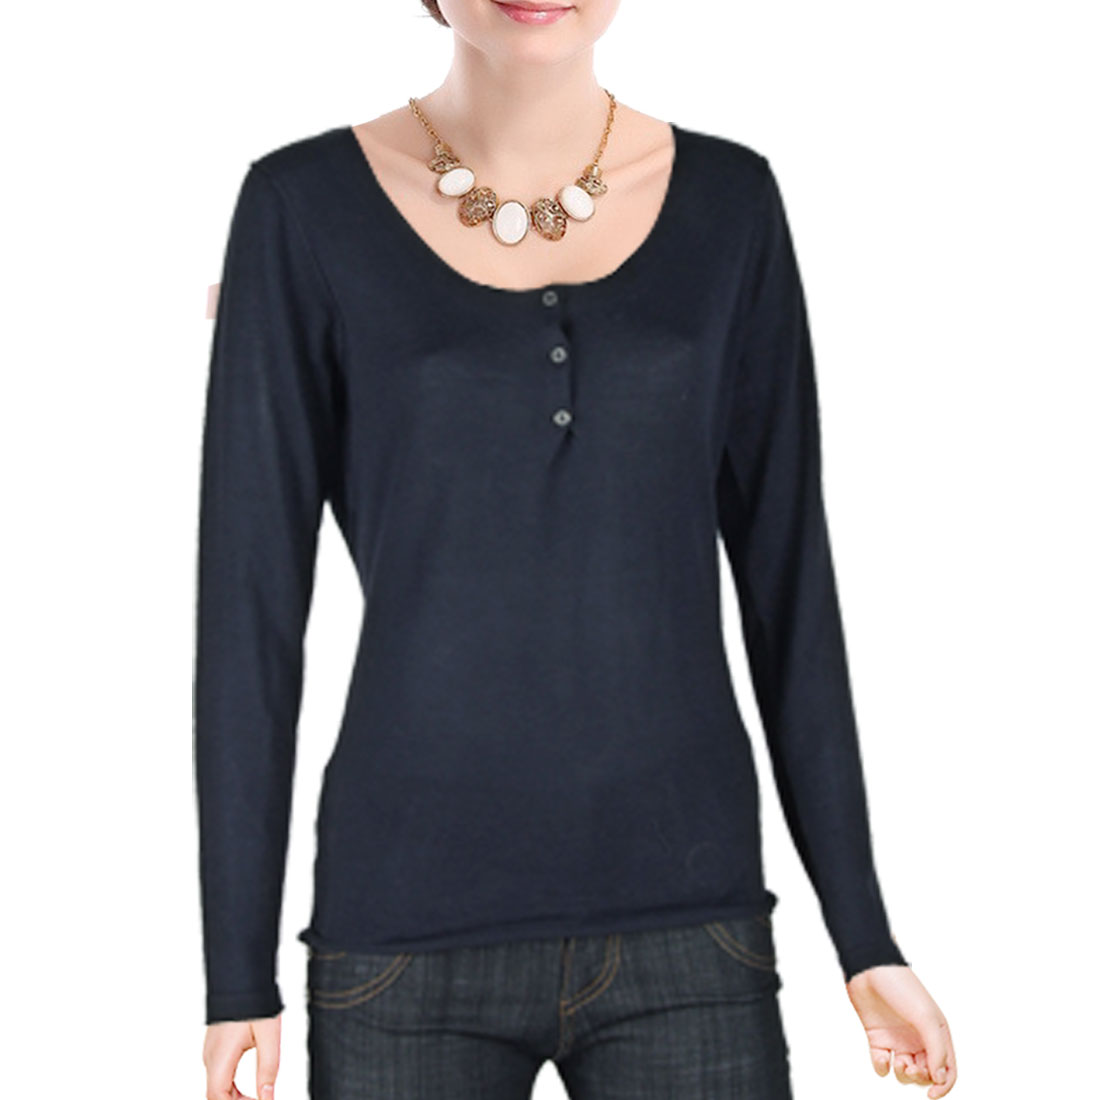 S Ladies 3 Button-down Scoop Neck Cardigan Sweater Black